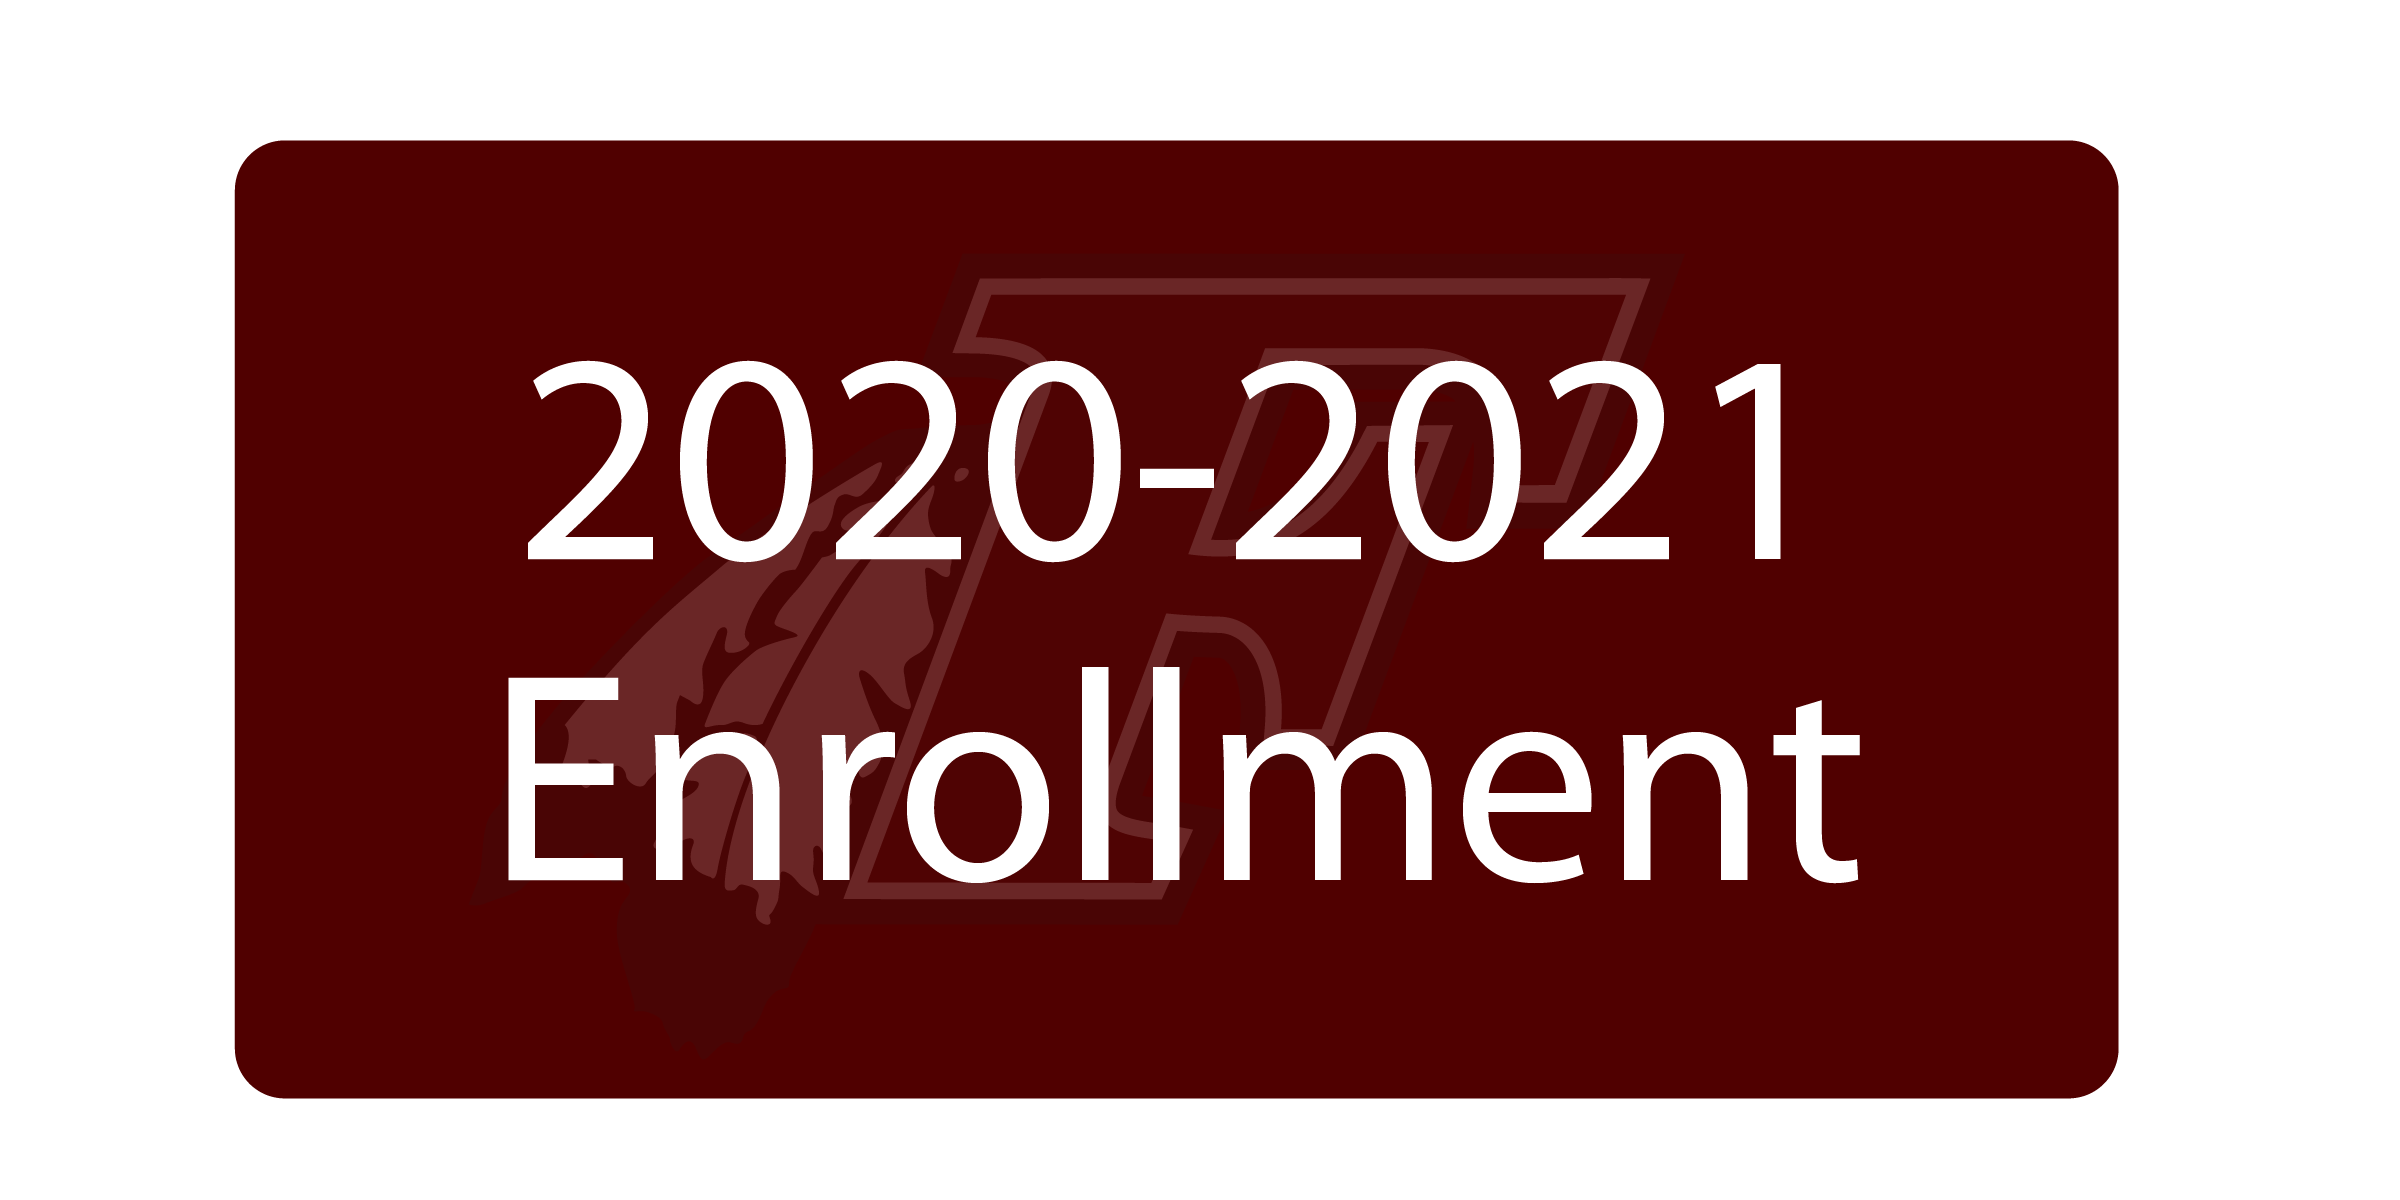 Enroll – The School District Of Menomonee Falls Intended For Menomonee Falls School District Calendar 2021